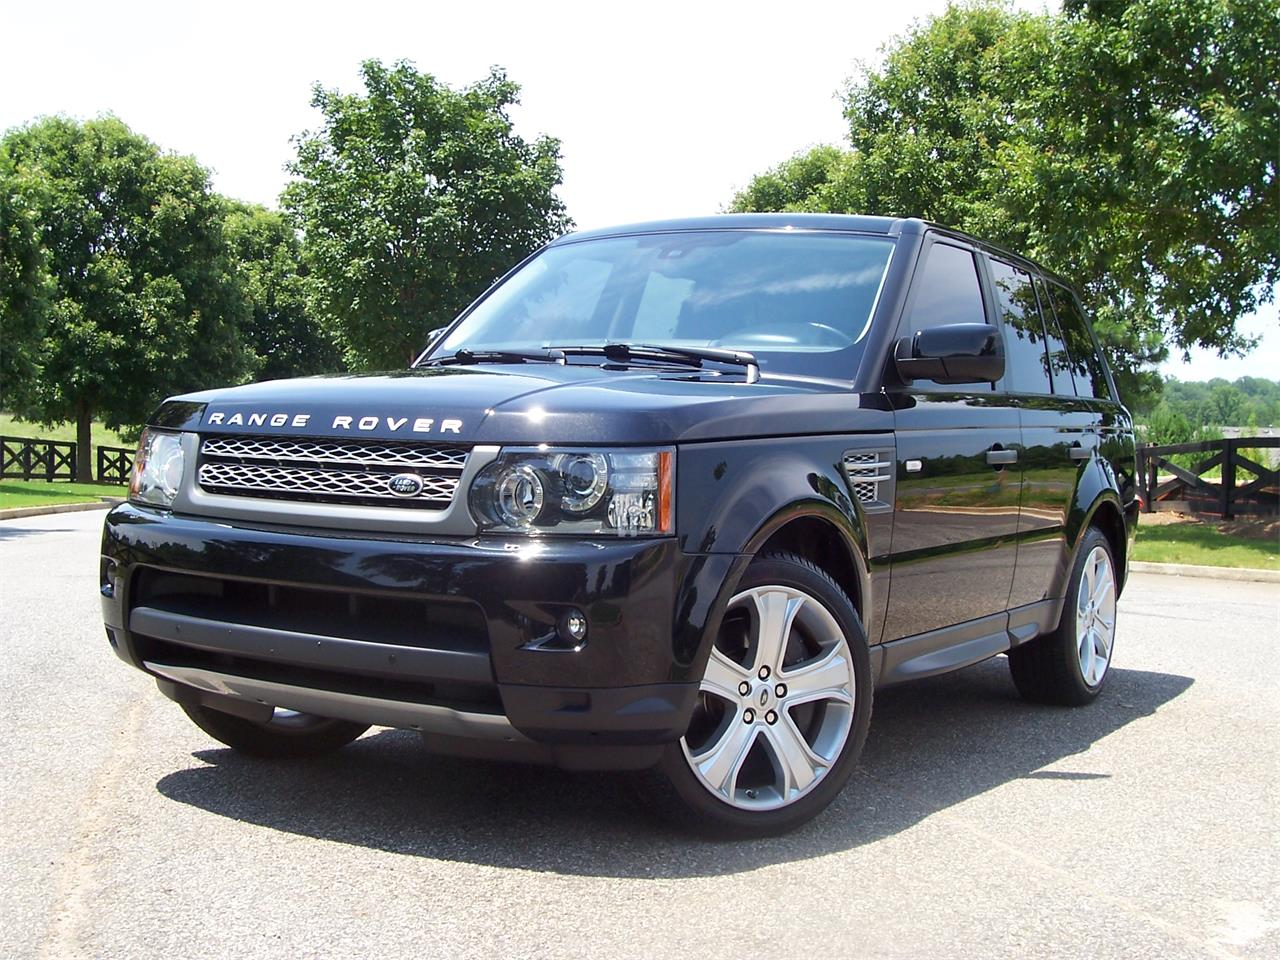 Large Picture of 2011 Range Rover located in Georgia - $34,900.00 Offered by Cloud 9 Classics - LMTA